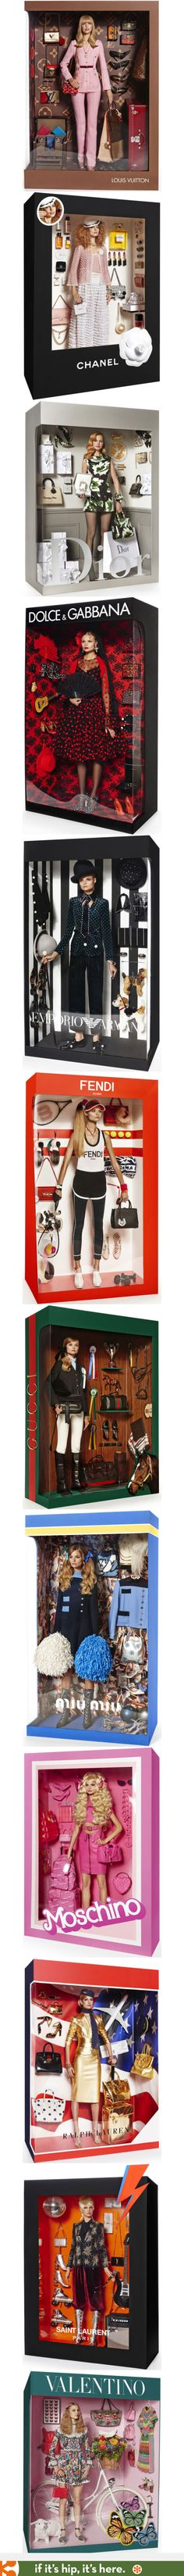 Living Dolls. Packaged models wearing branded fashions | http://www.ifitshipitshere.com/living-dolls-models-become-whole-package-panoplies/